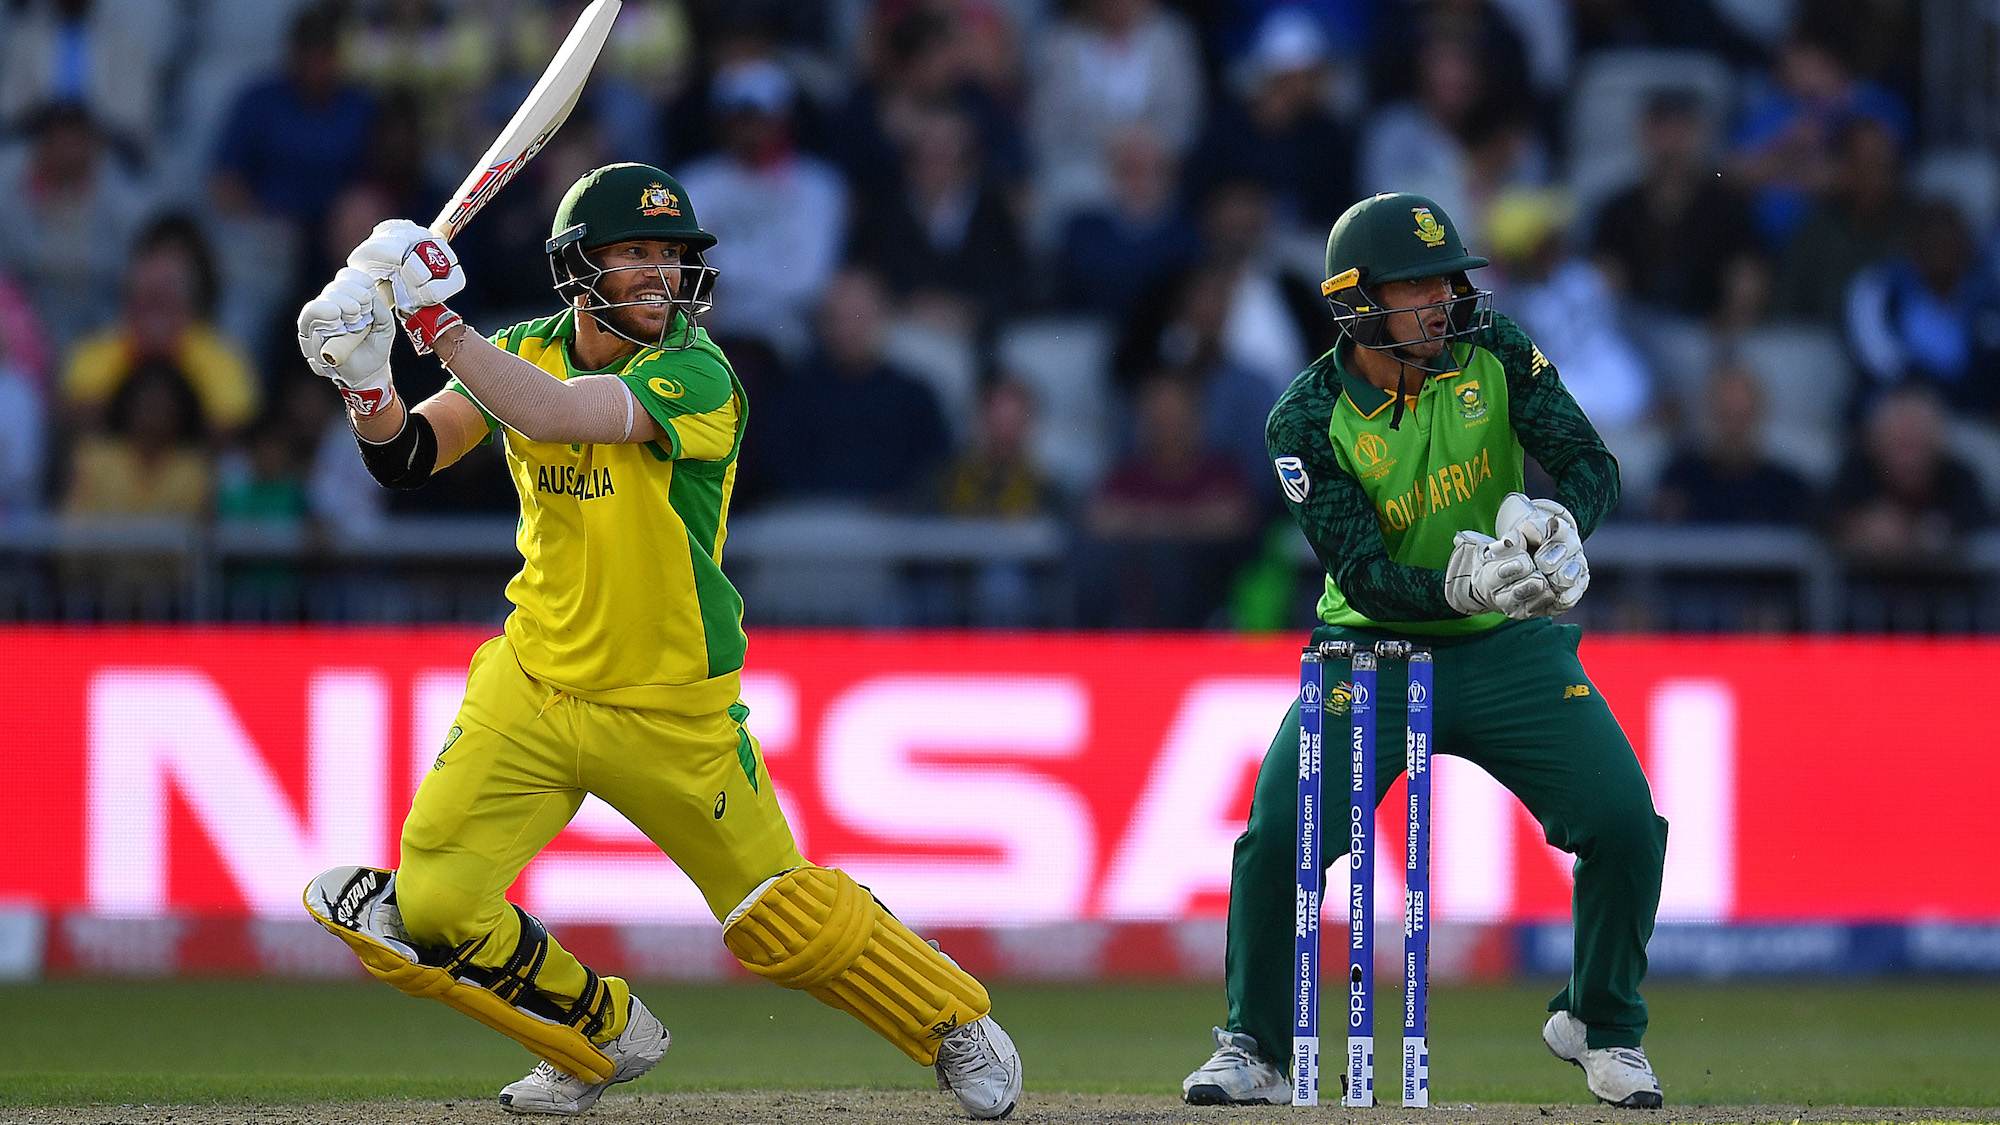 South Africa vs Australia live stream: how to watch ODI series 2020 cricket from anywhere